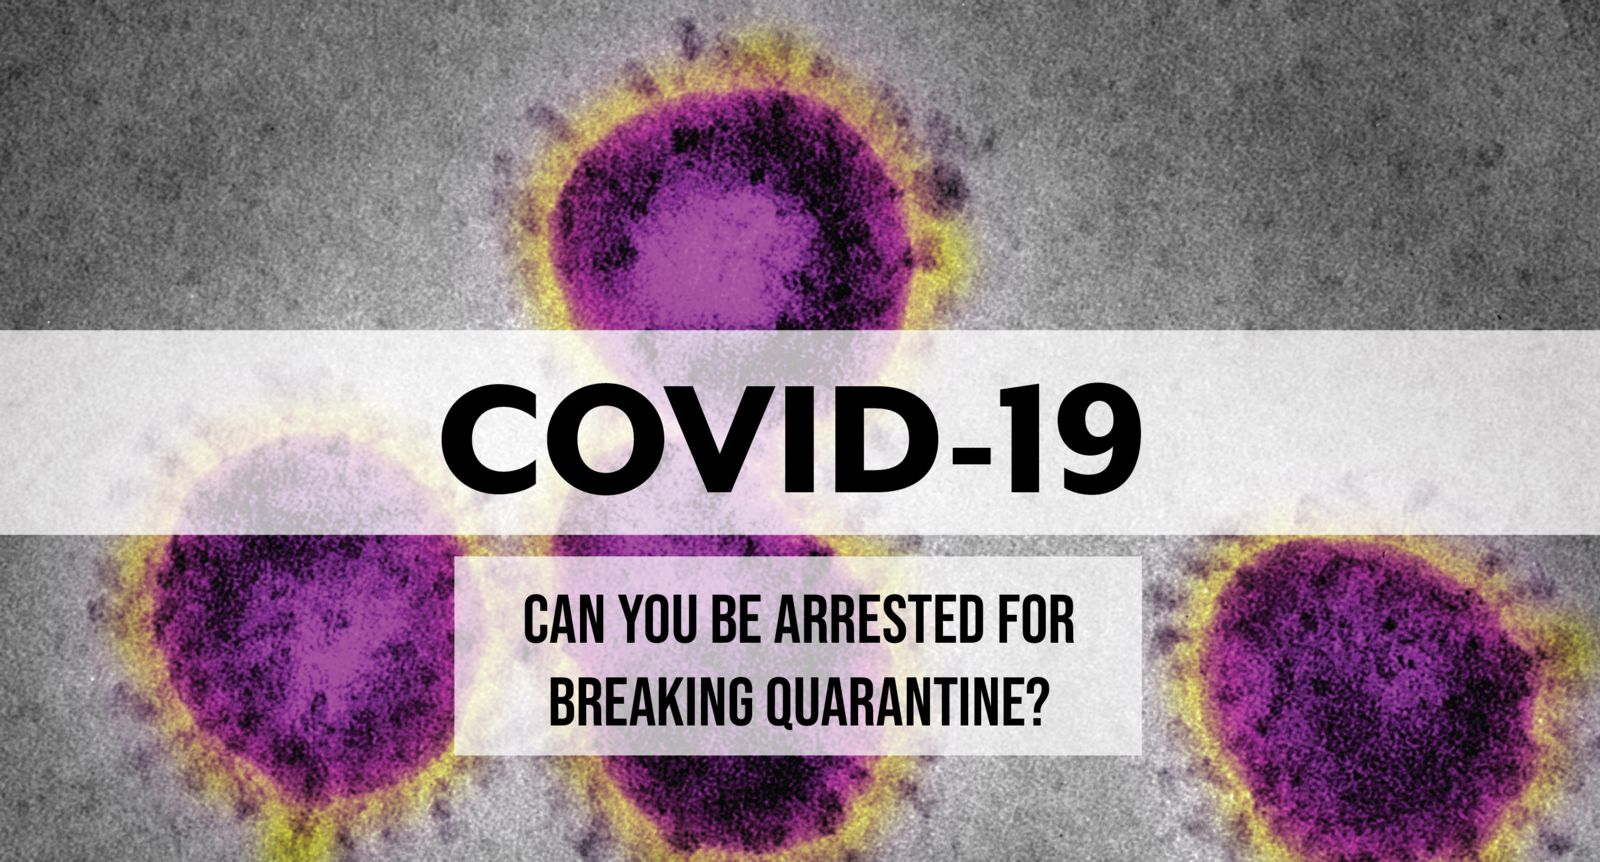 An image of COVID-19 and Coronavirus with the question: Can you be arrested for breaking coronavirus quarantine in Florida?